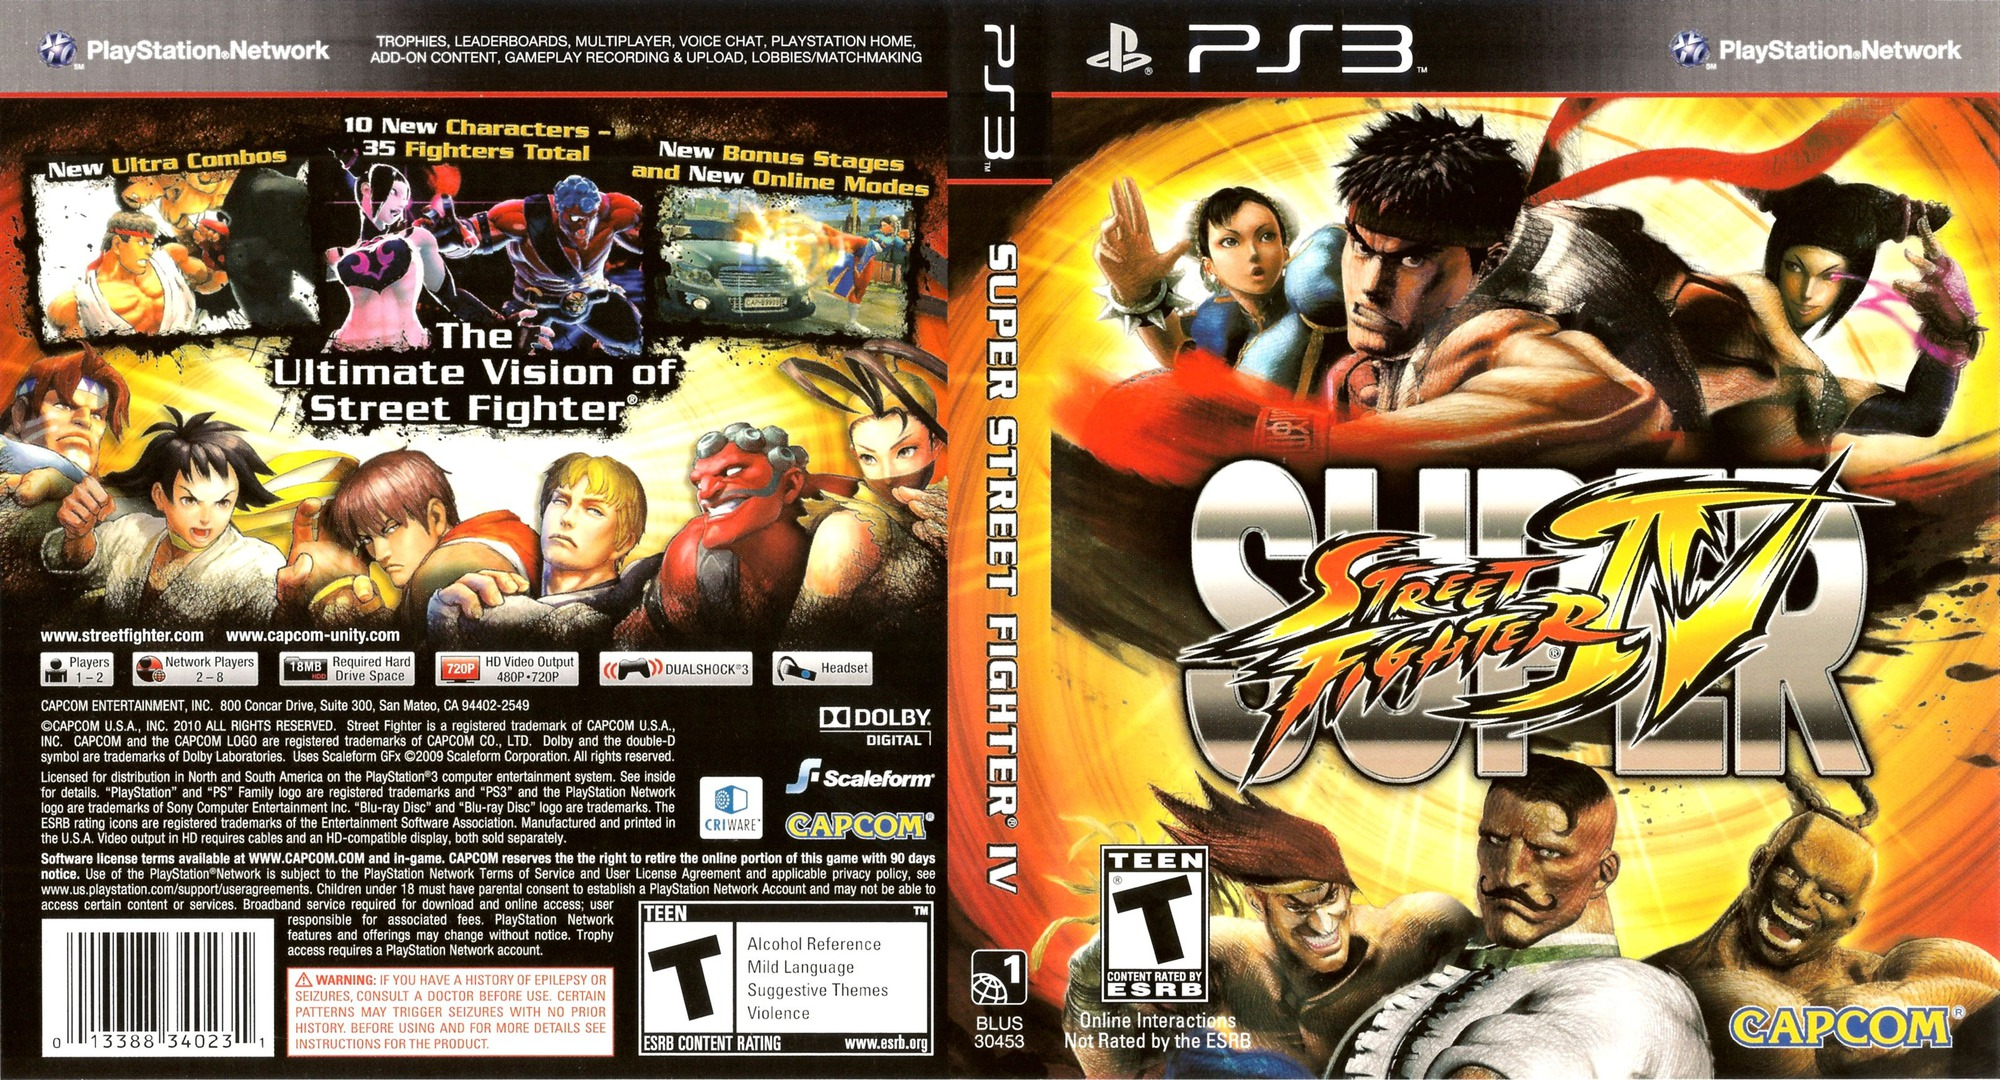 Super Street Fighter IV PS3 coverfullHQ (BLUS30453)